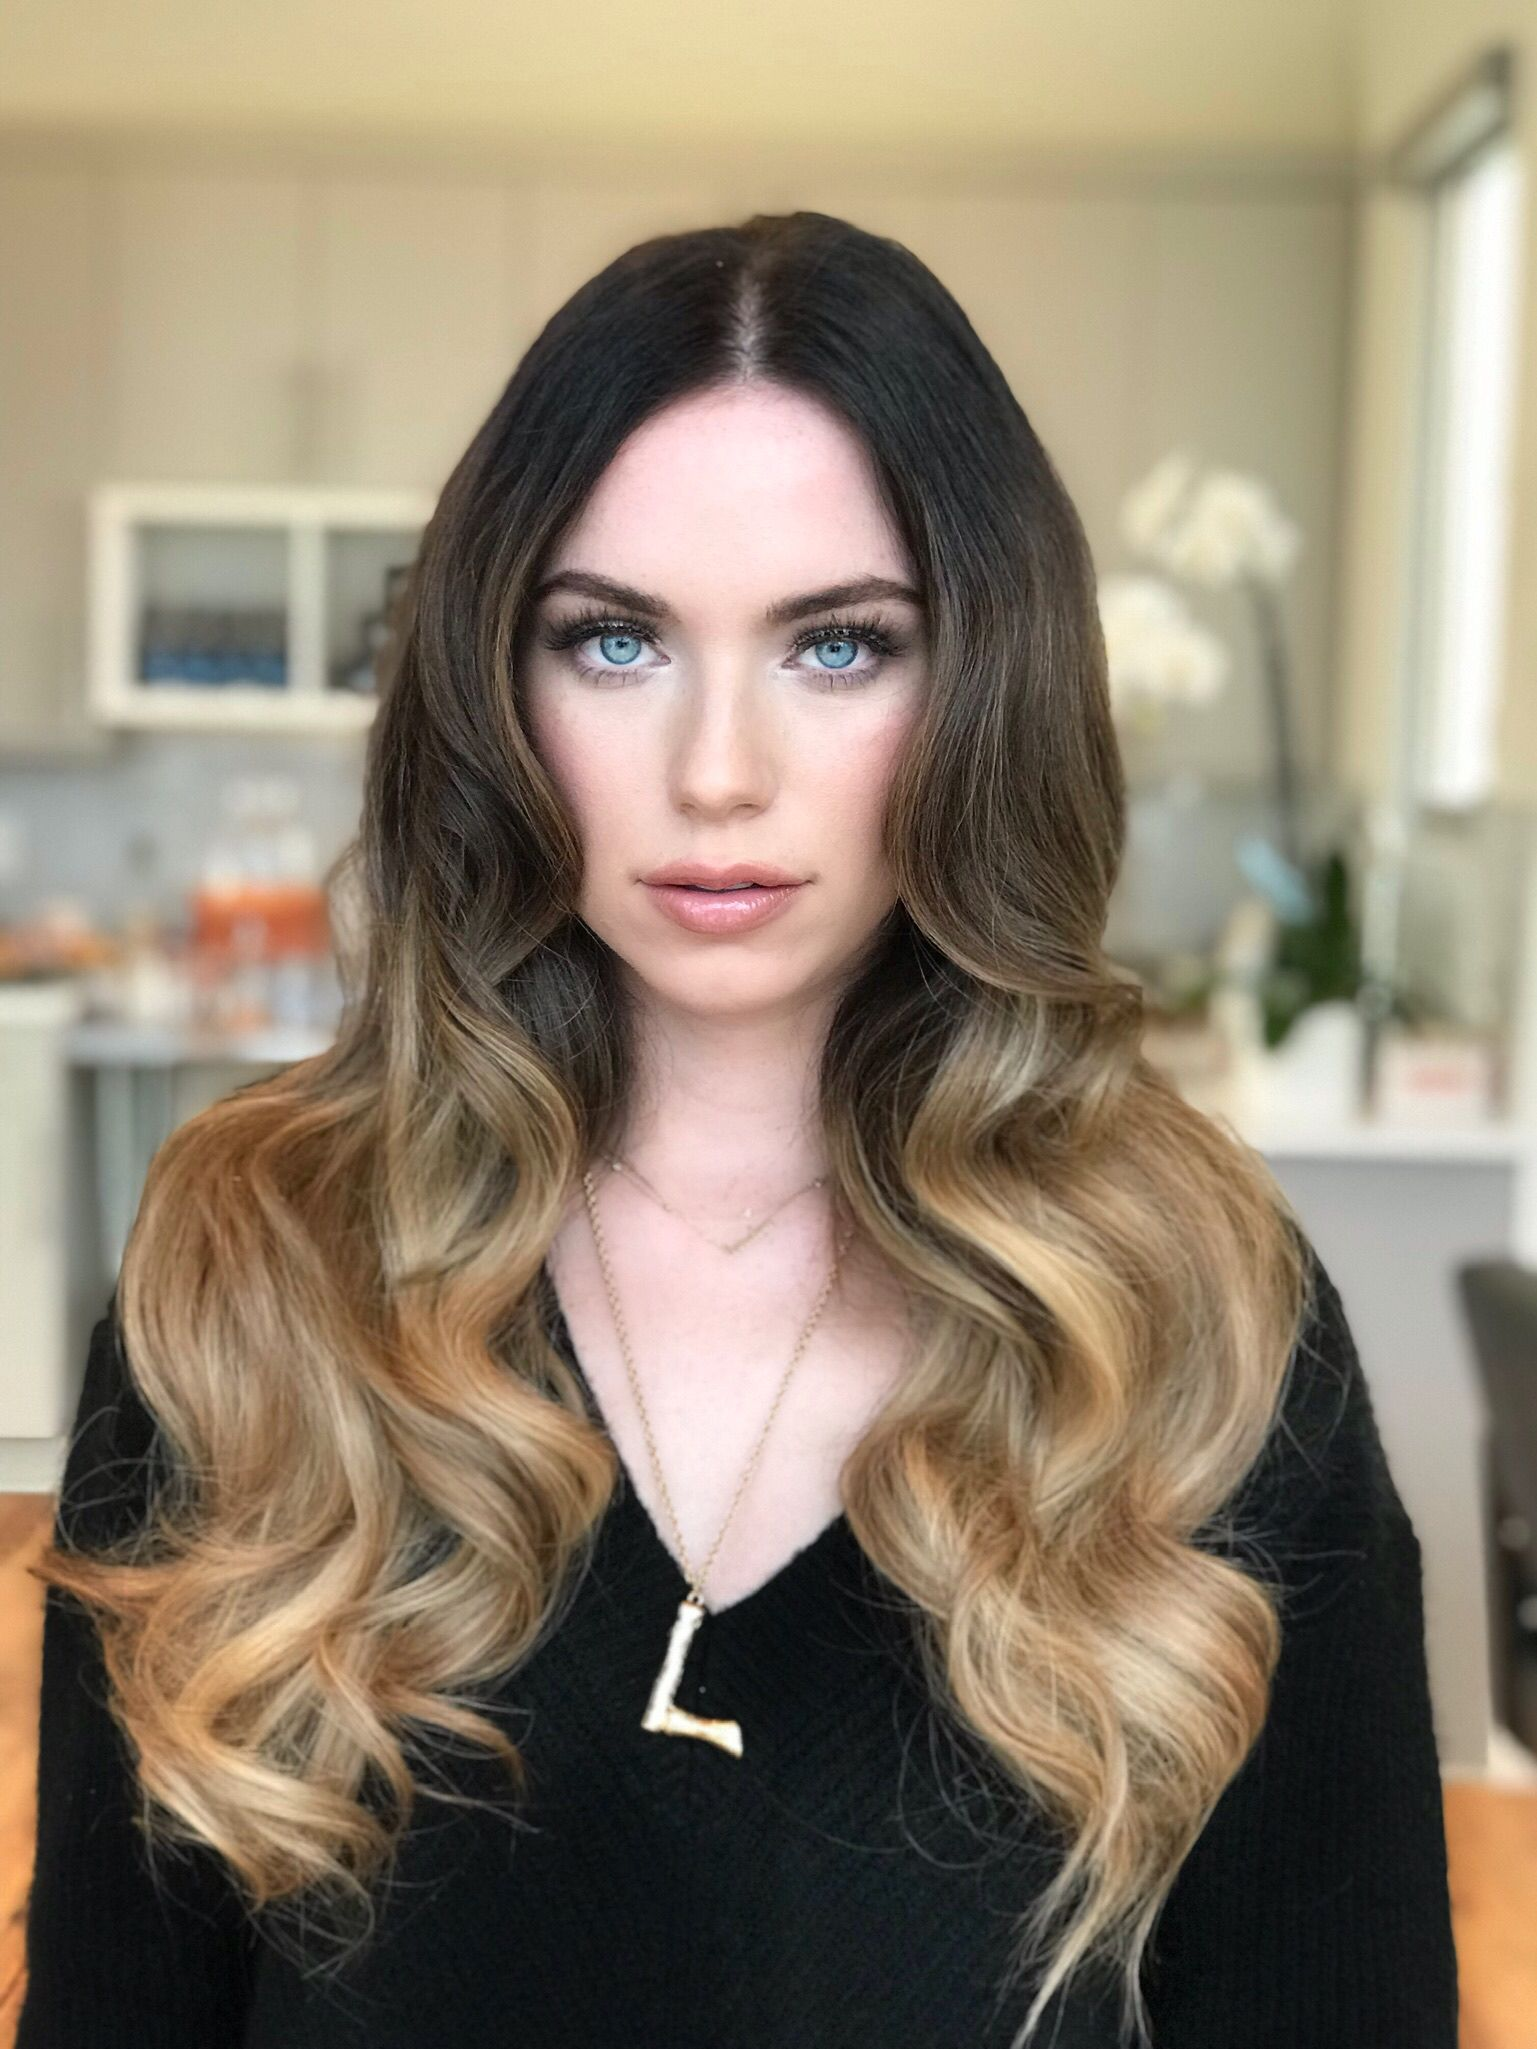 Creating length volume and balayage color using only hair